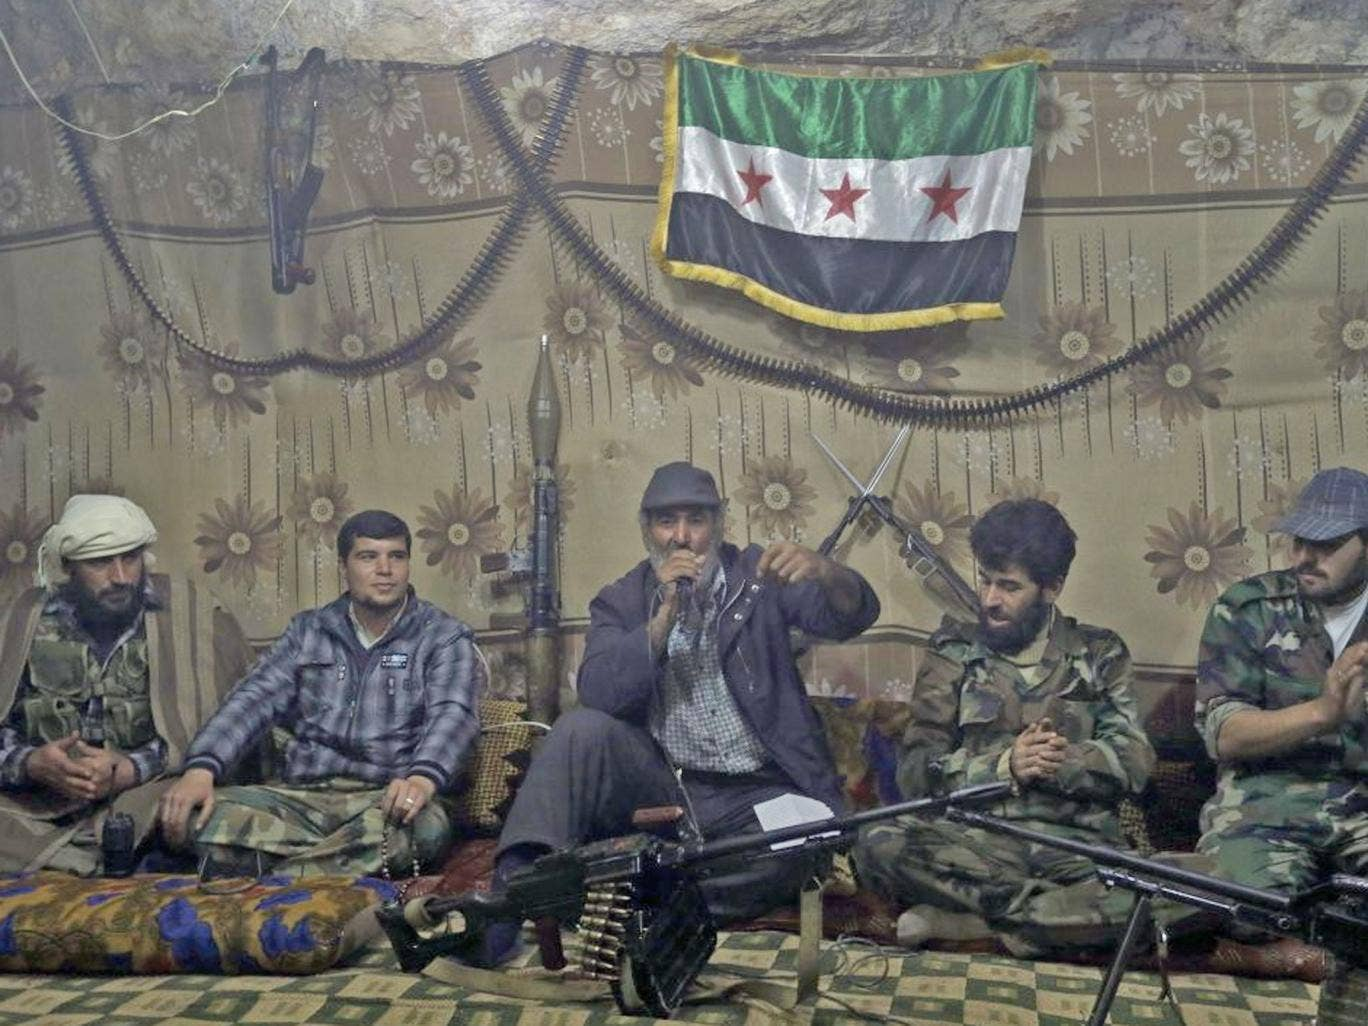 Free Syrian Army fighters gather at one of their caves in Jabal al-Zaweya, Syria, whom reject talks until President Bashar Assad leaves